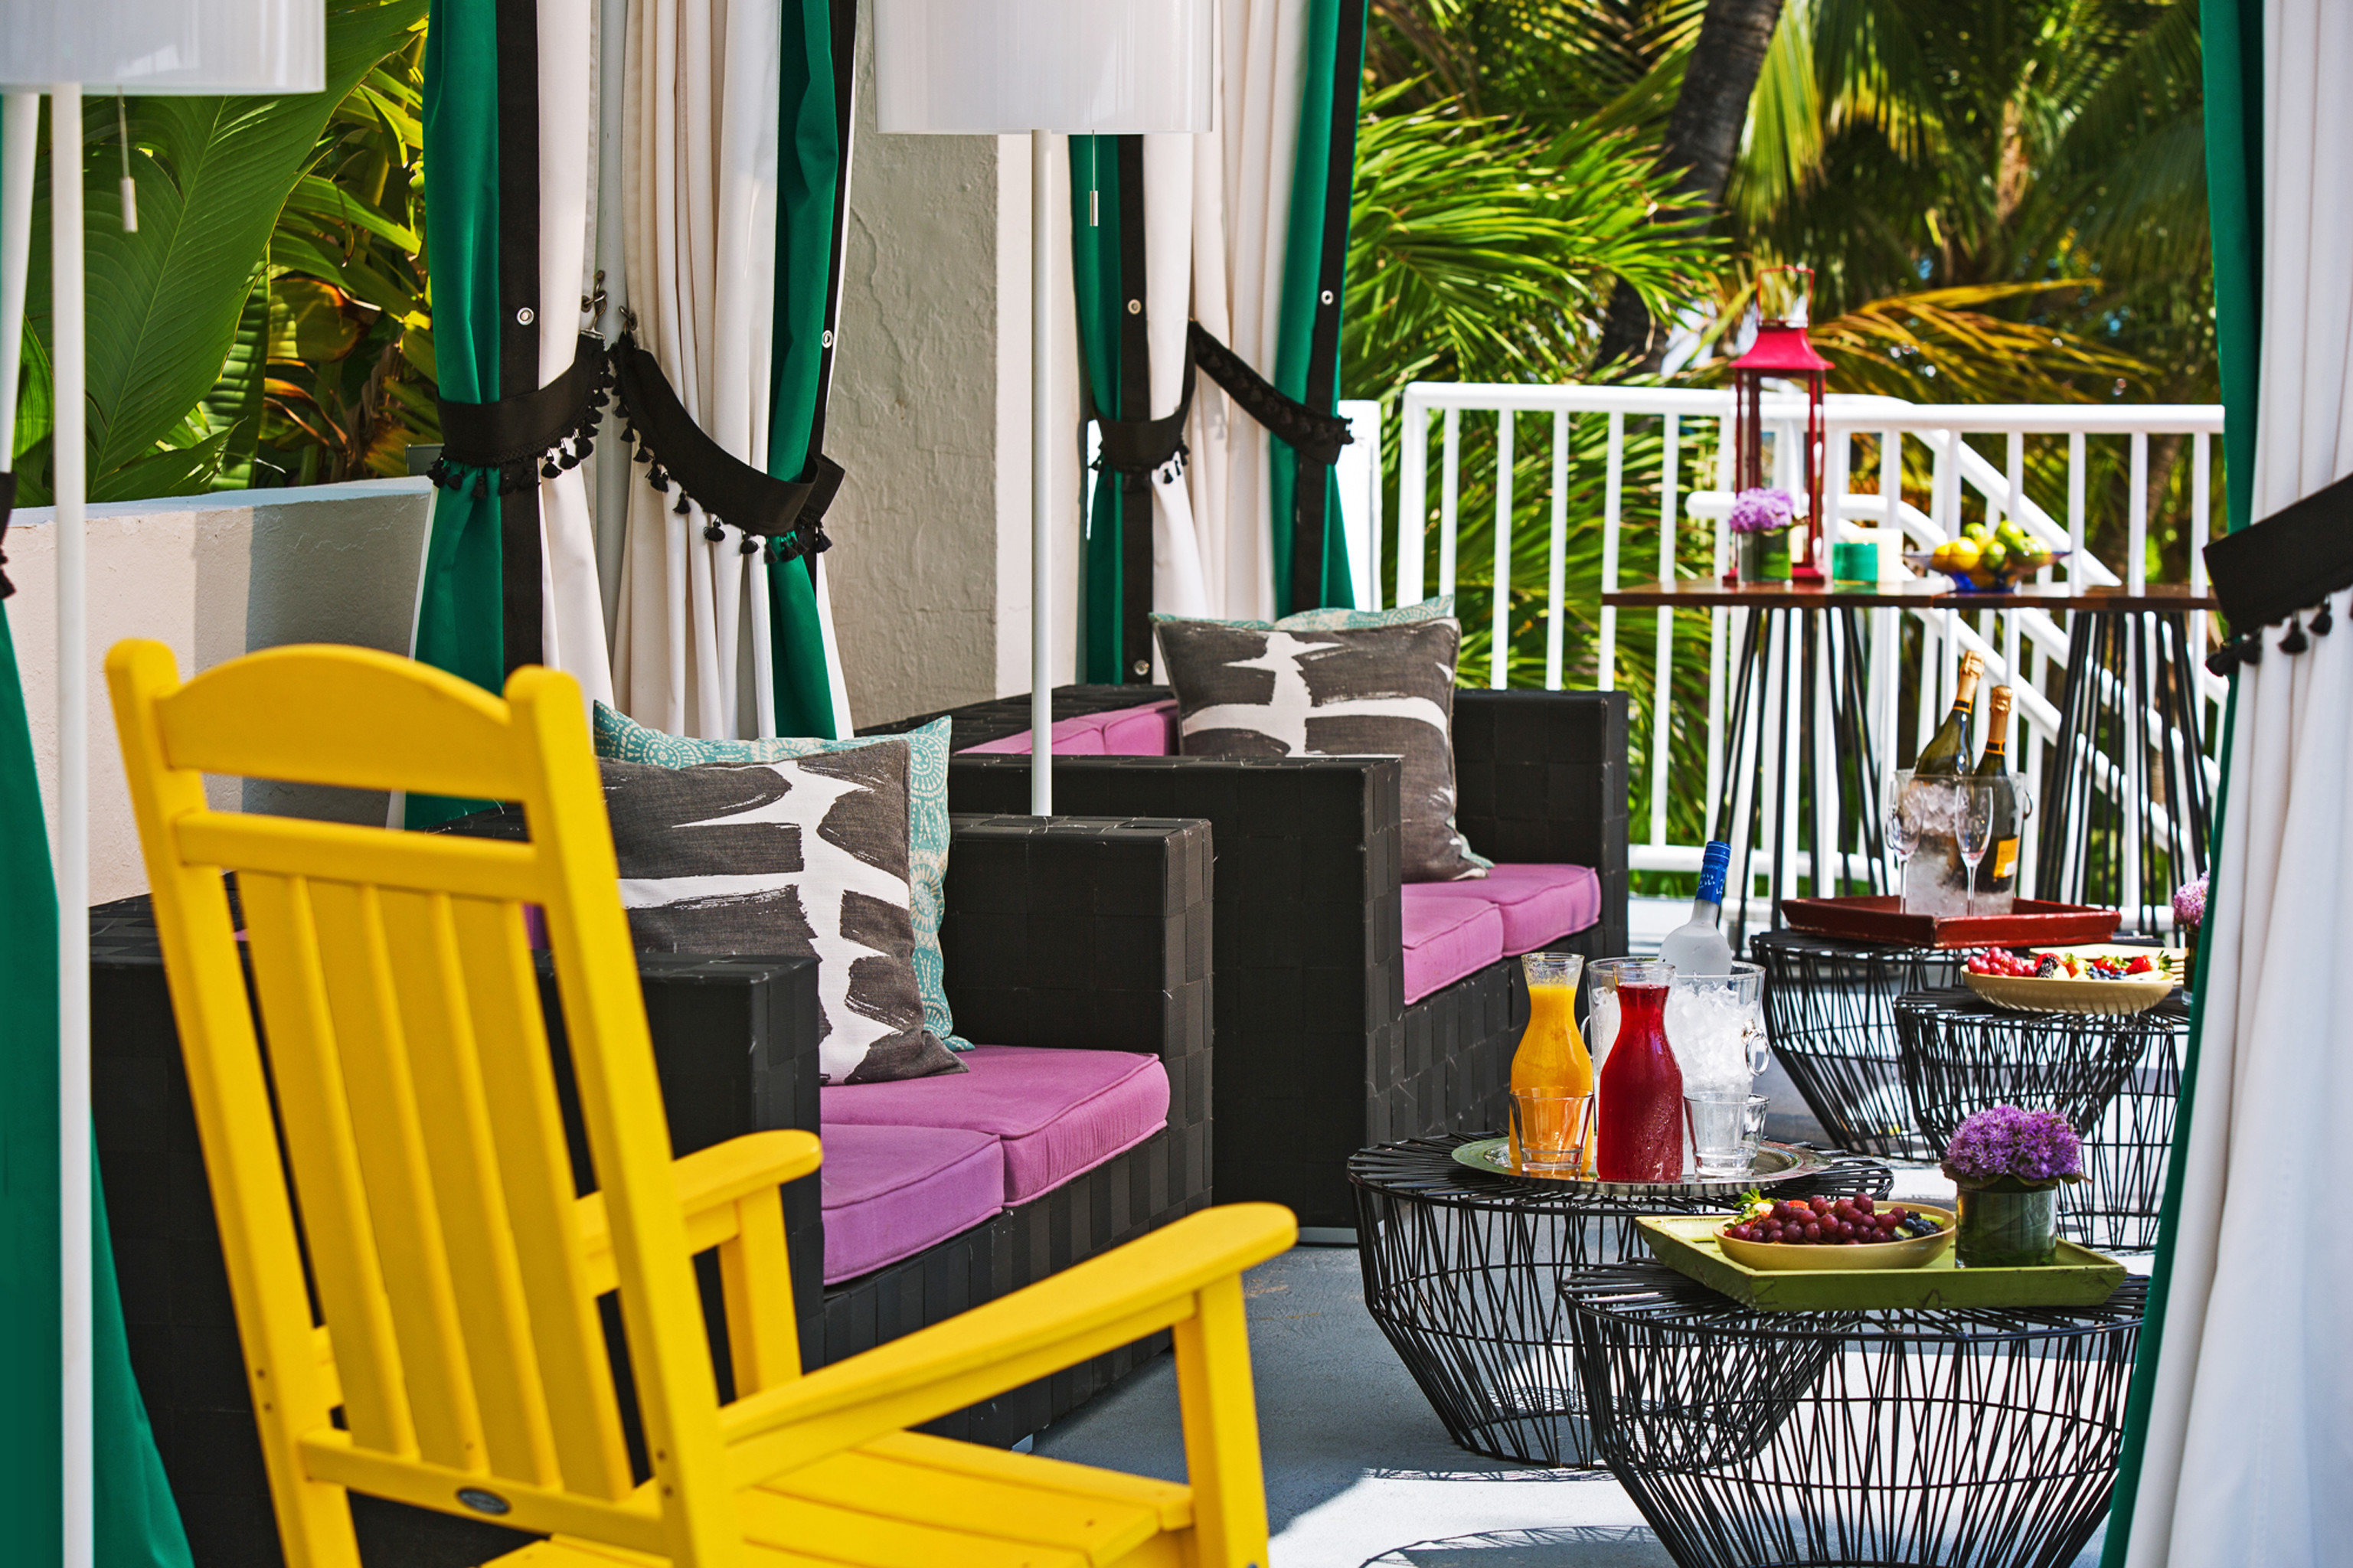 Drink Eat Modern Patio Resort chair Dining home colorful